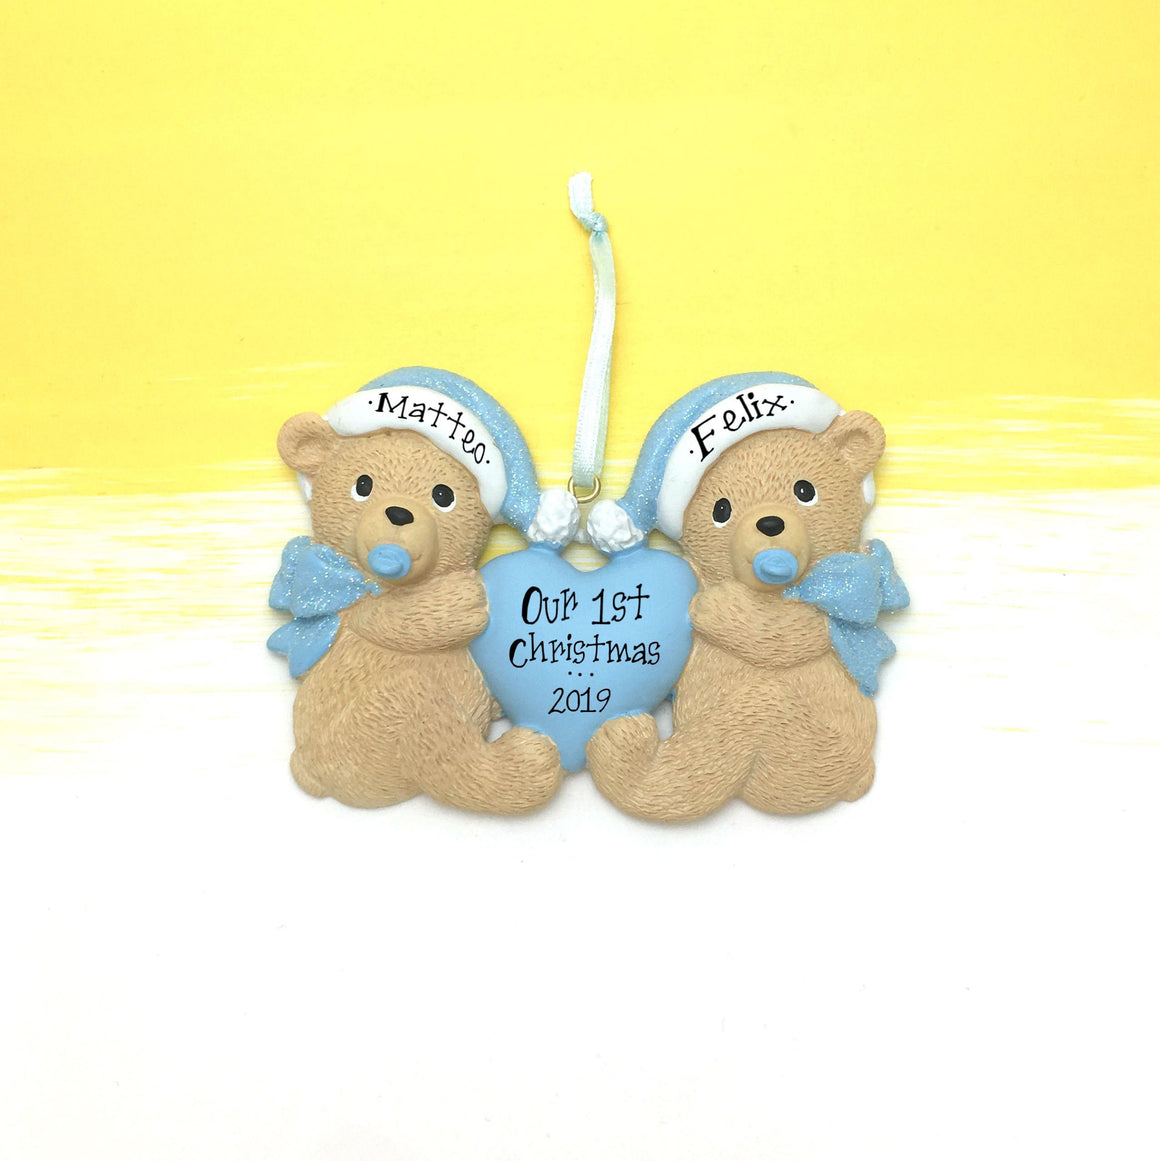 Baby Bear Twins First Christmas Ornament / Blue / Boy Twins / Teddy Bears / Personalized Baby Ornament / Personalized Ornament / Baby Gift